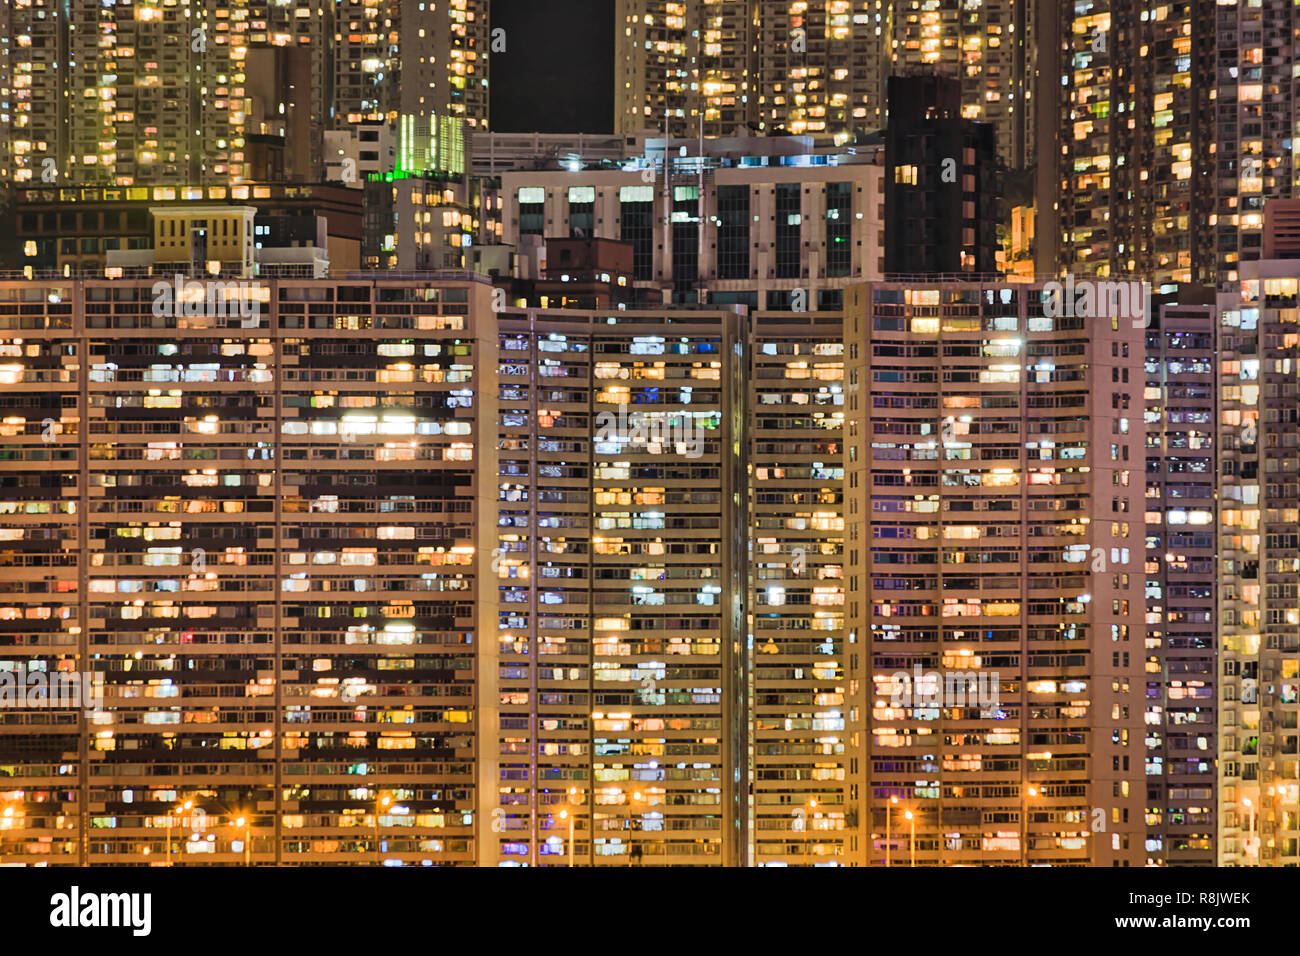 Densely populated skyscraper living towers of houses in Hong Kong at night with bright illumination of windows on island's waterfront. Stock Photo